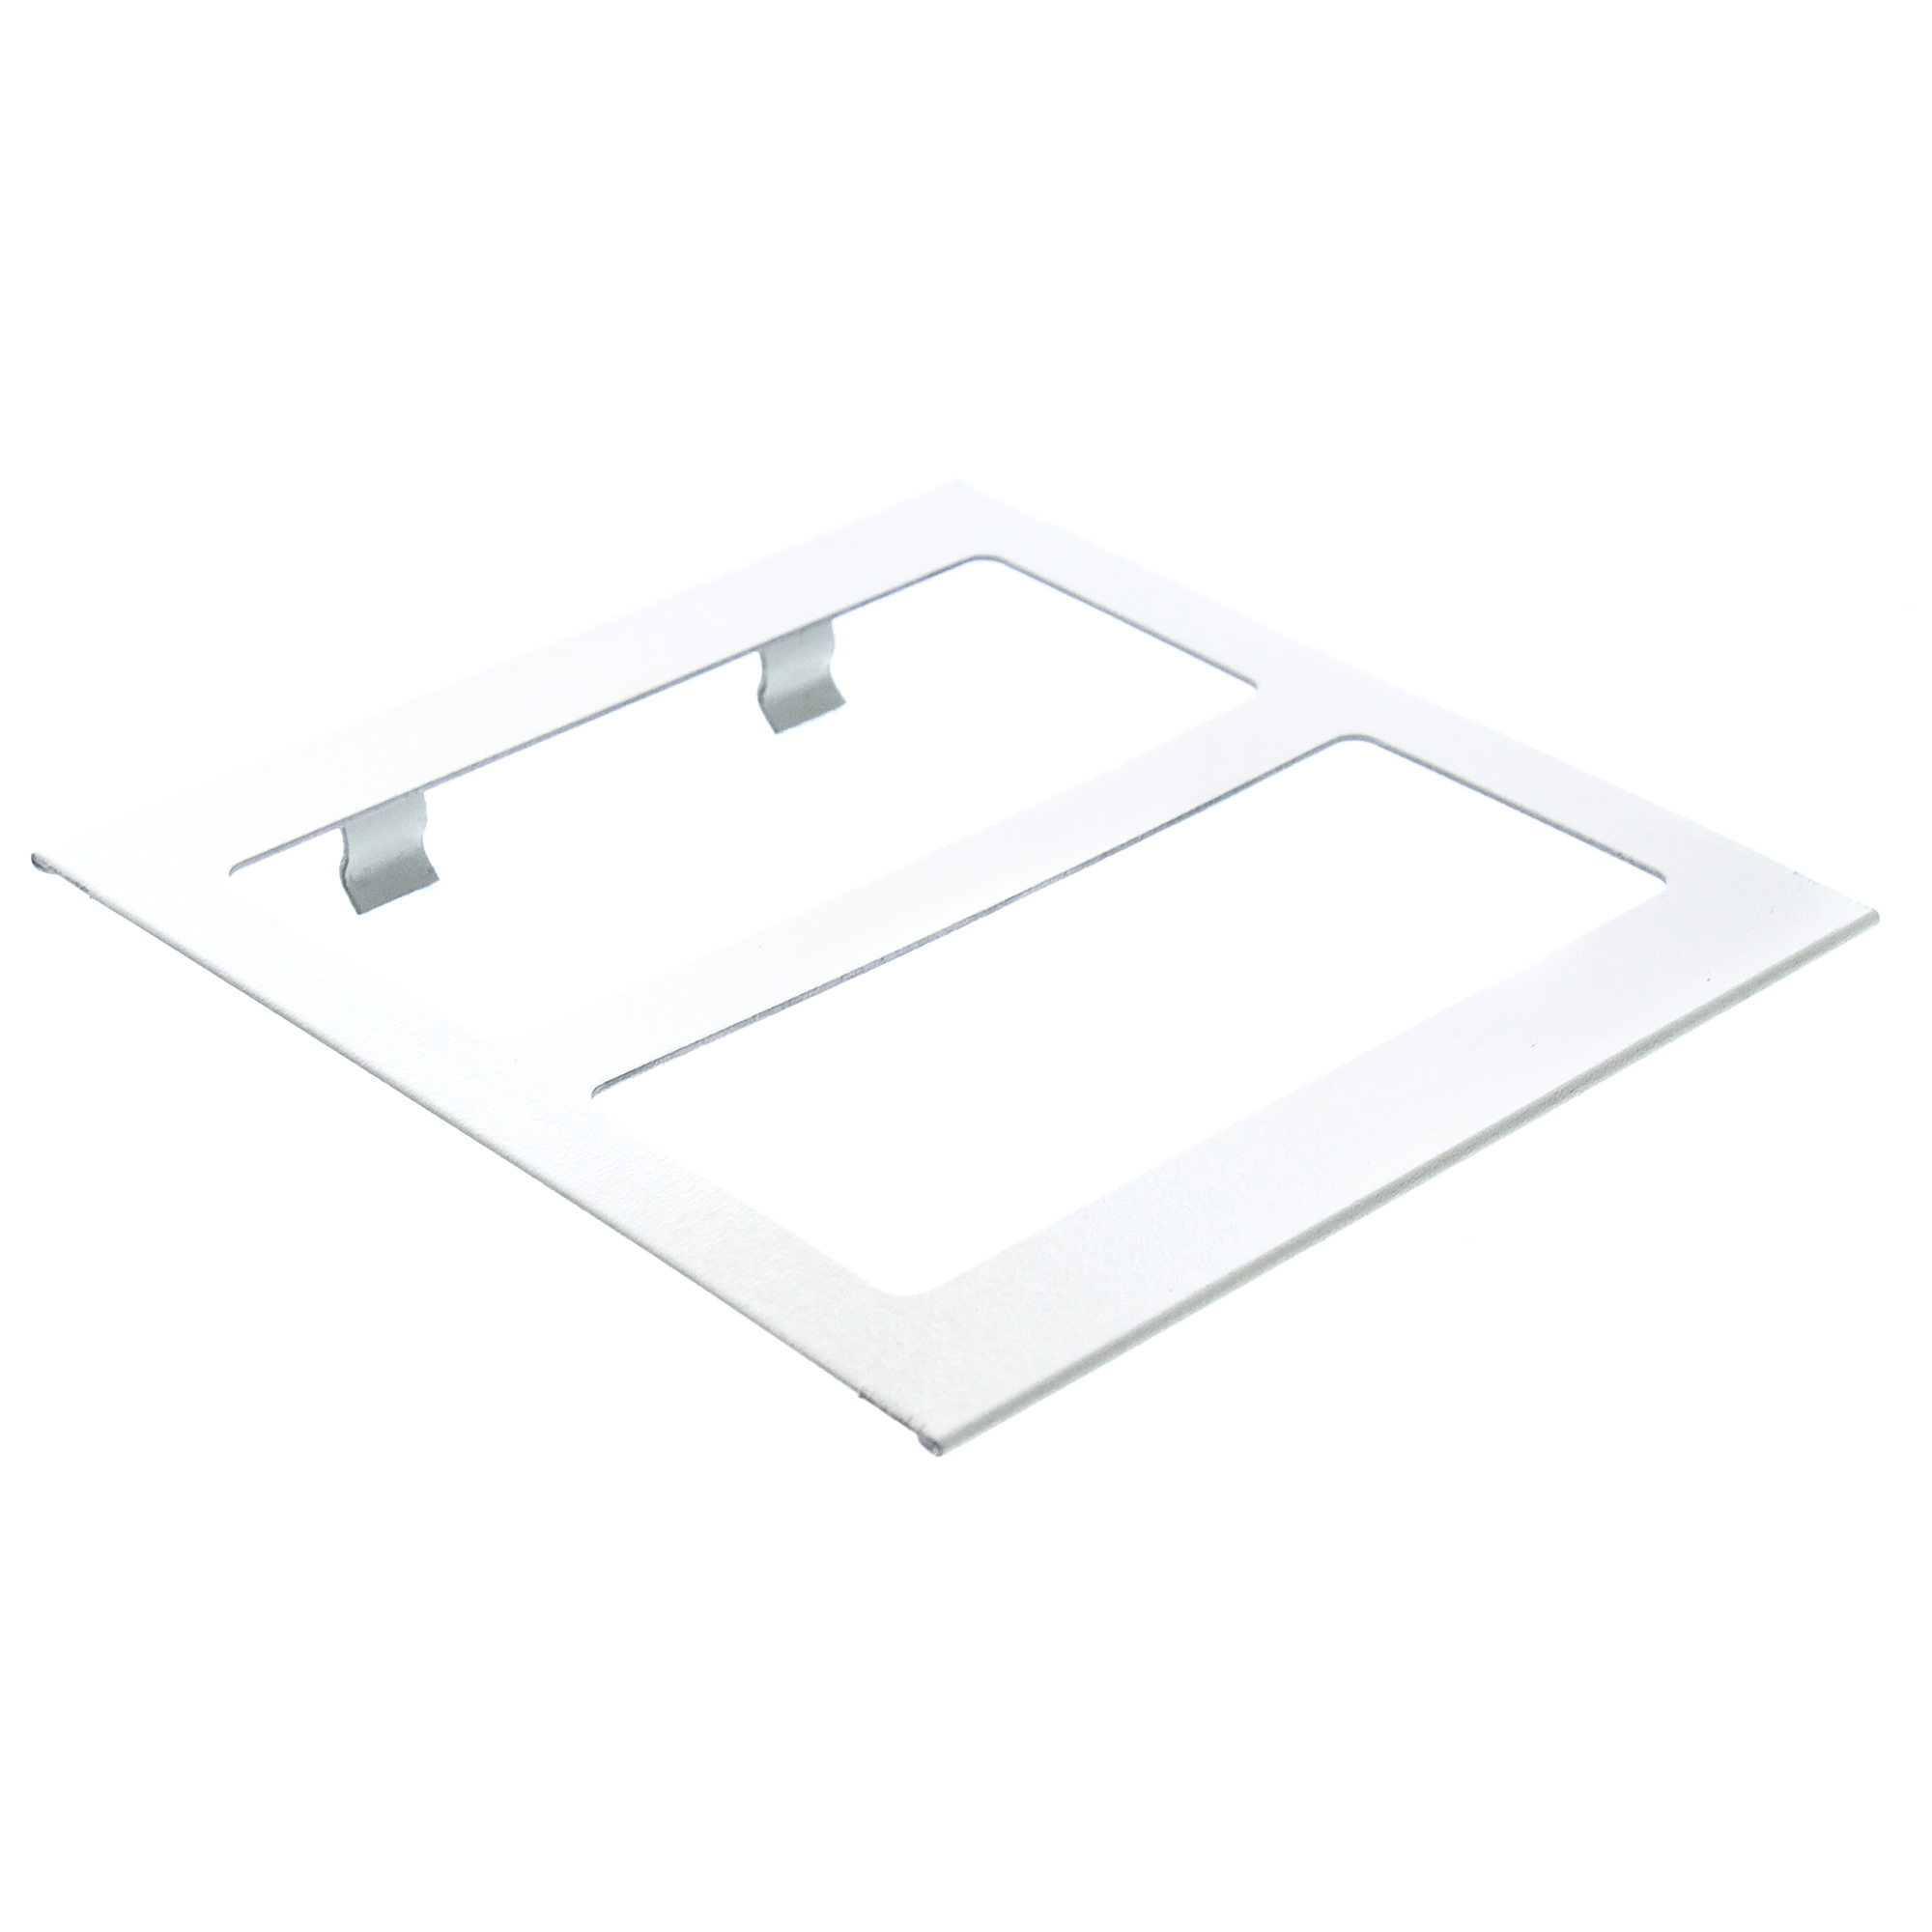 WIREMOLD LEGRAND V4007C-2 2-GANG DEVICE COVER PLATE 4000 SERIES ...